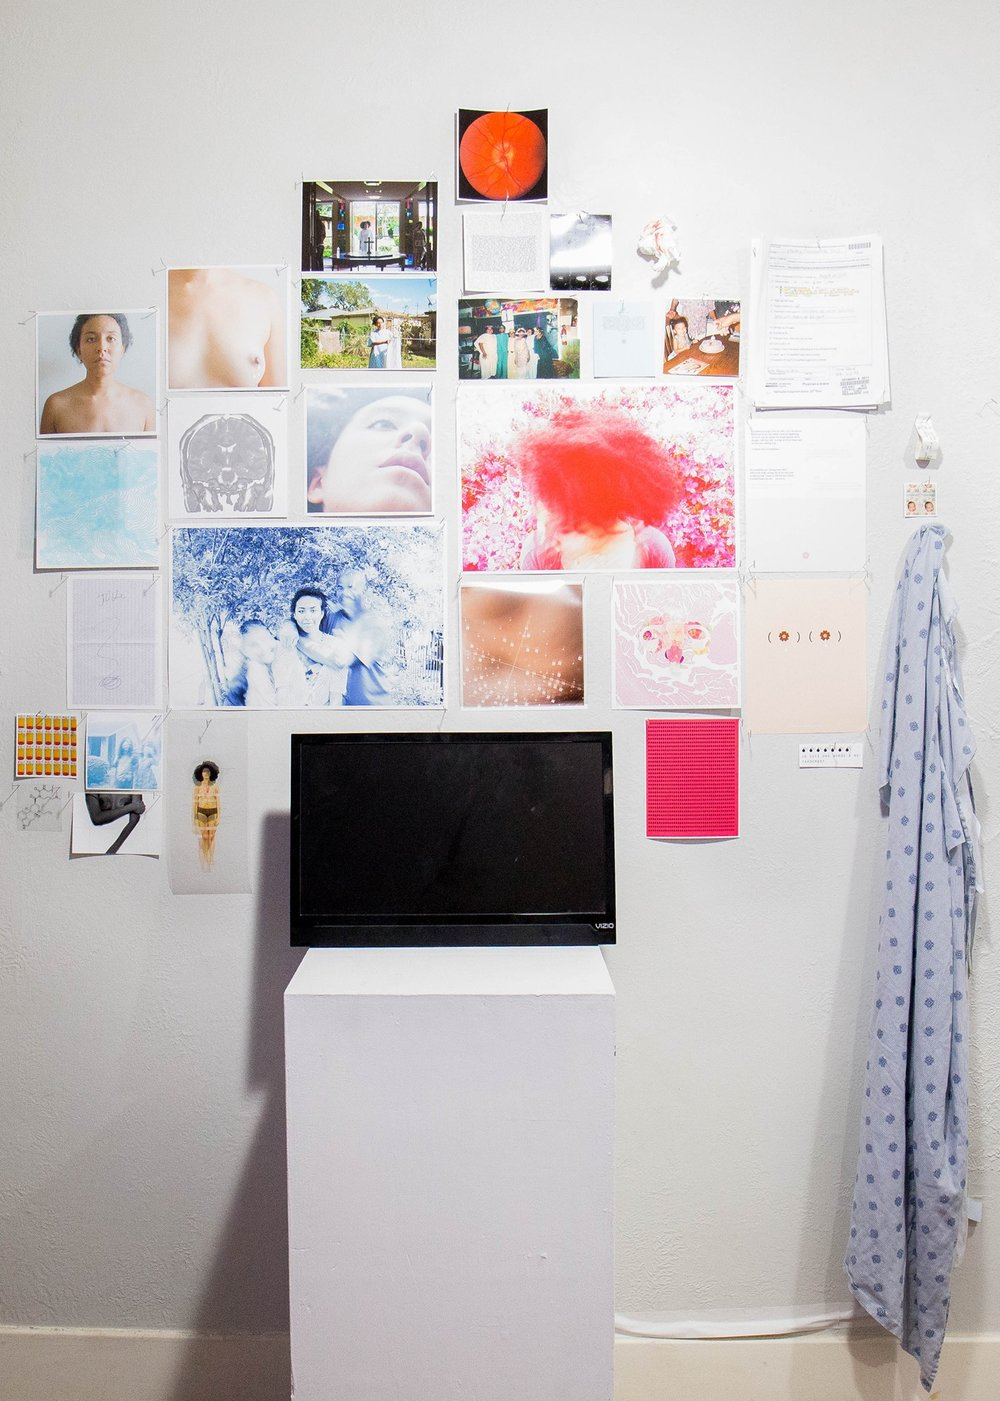 Installation: inkjet print, transparency print, cloth, blood, paper, monitor and plastic; (2012-present) : installation shot: Tere Garcia